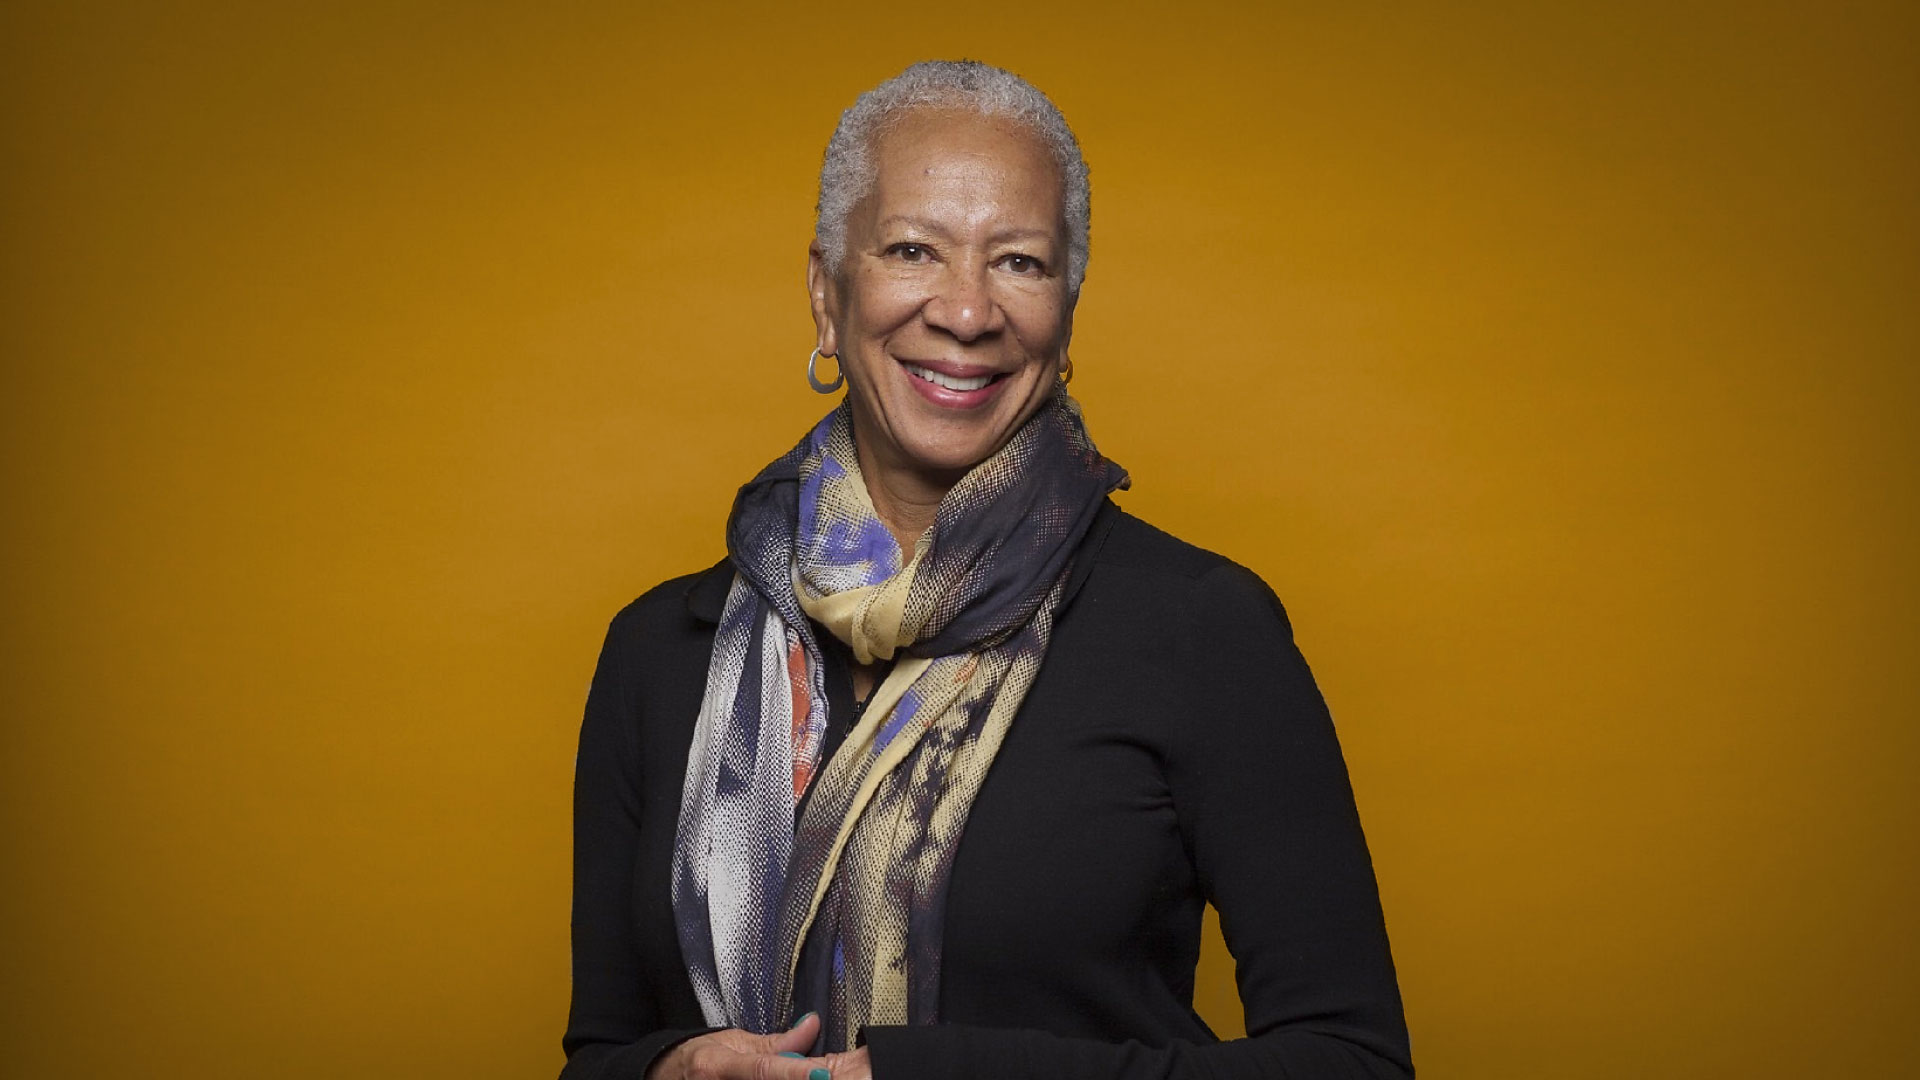 https://unfinished.com/news/unfinished-welcomes-angela-glover-blackwell-as-network-chairperson/